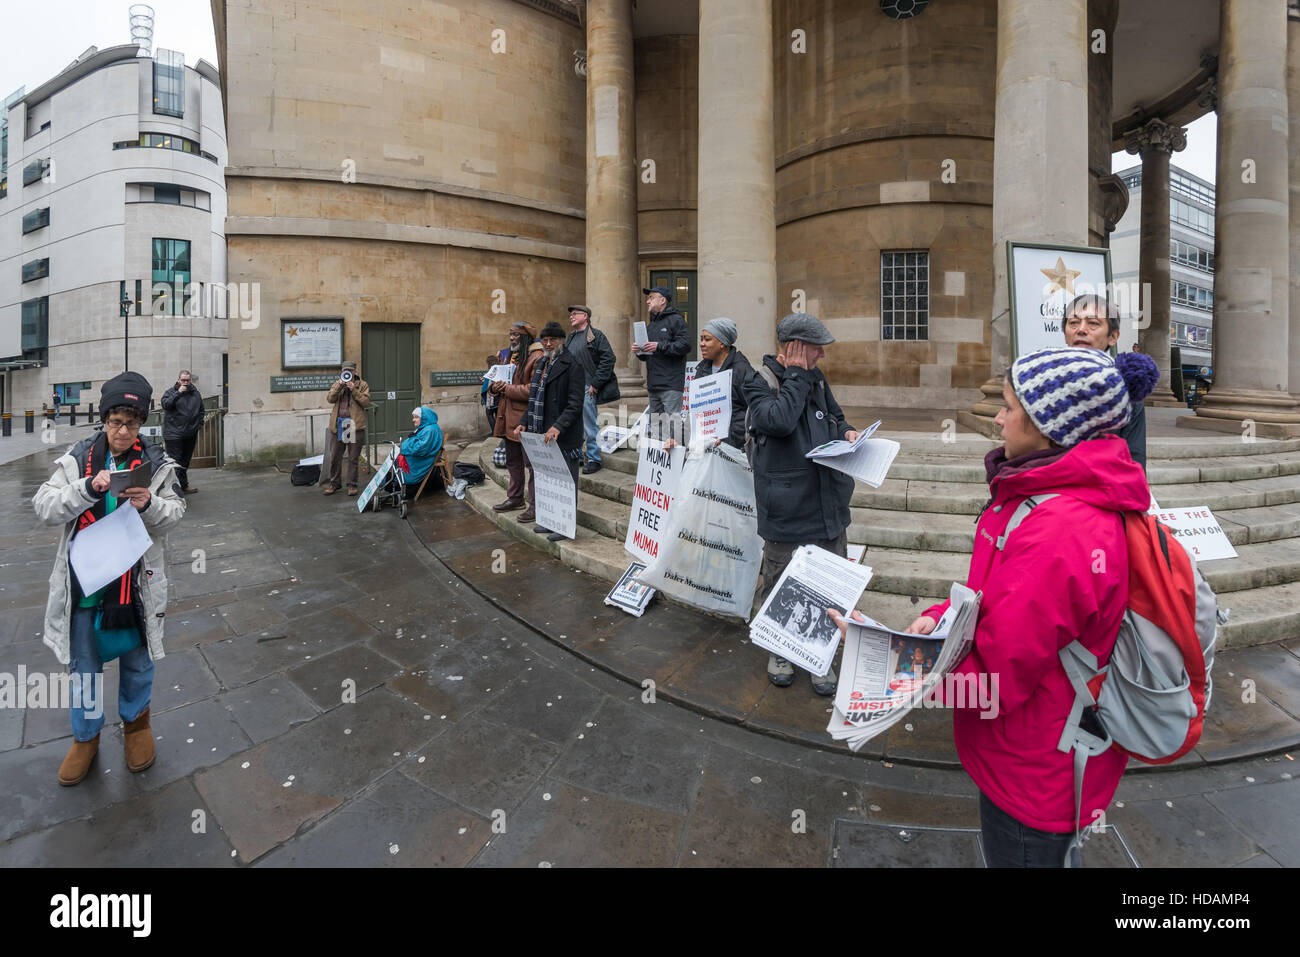 London, UK. 10th December 2016. The protest outside the BBC on UN Human Rights Day highlights their failure to cover - Stock Image